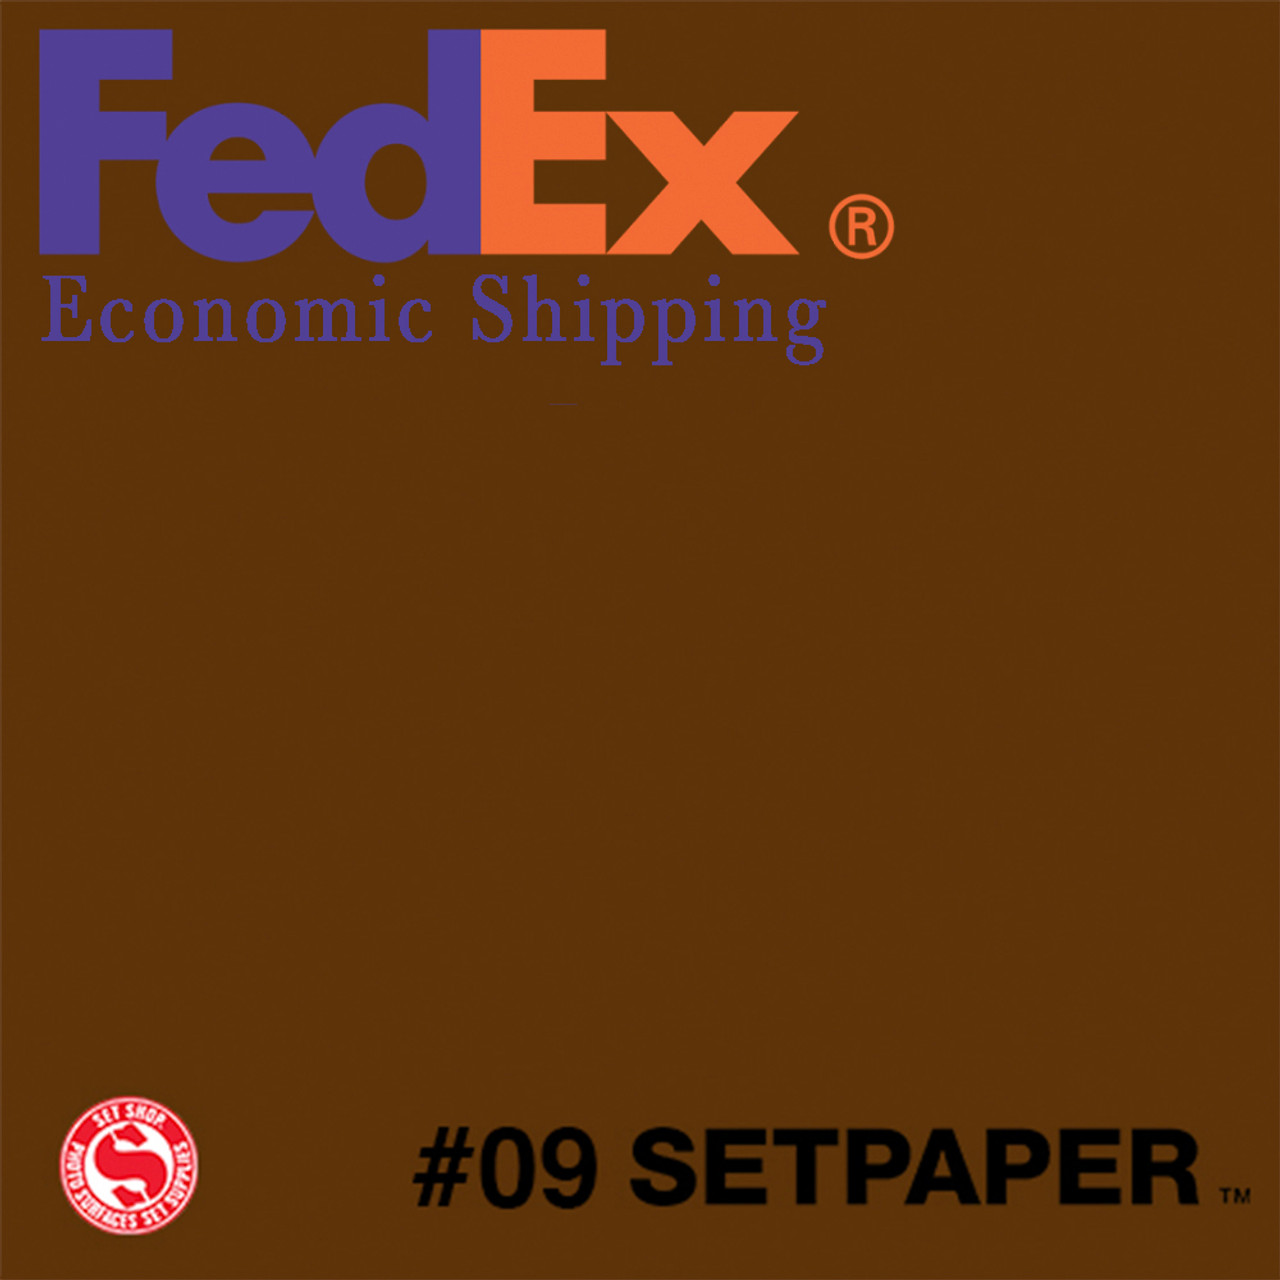 "(ECONOMIC SHIPPING) SETPAPER - DARK BROWN 48"" x 36' (1.2 x 11m)"